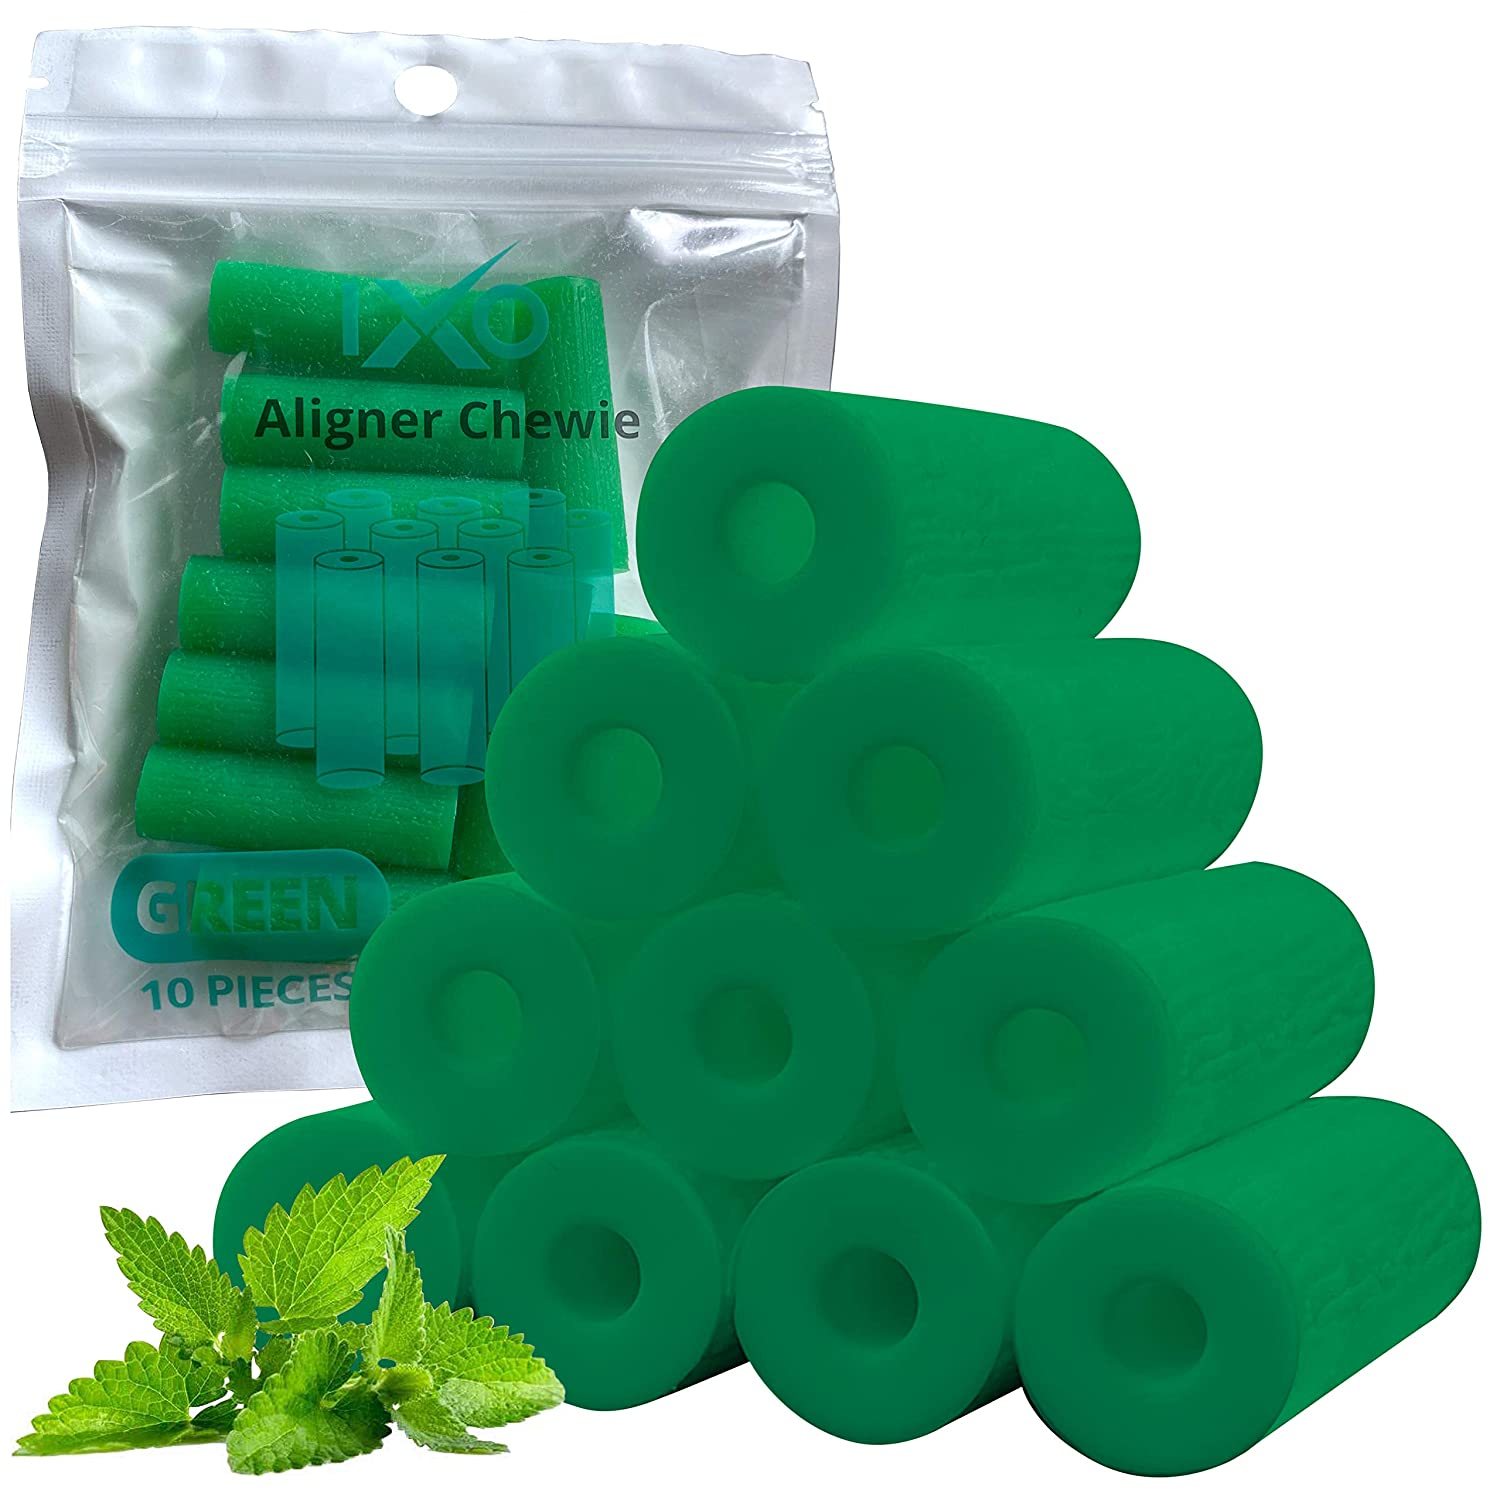 IXO Aligner Seater Chewies for Invisalign Aligners, Mint Scent, Bulk Pack in Resealable Bag (10 PCs) (Green) : Beauty